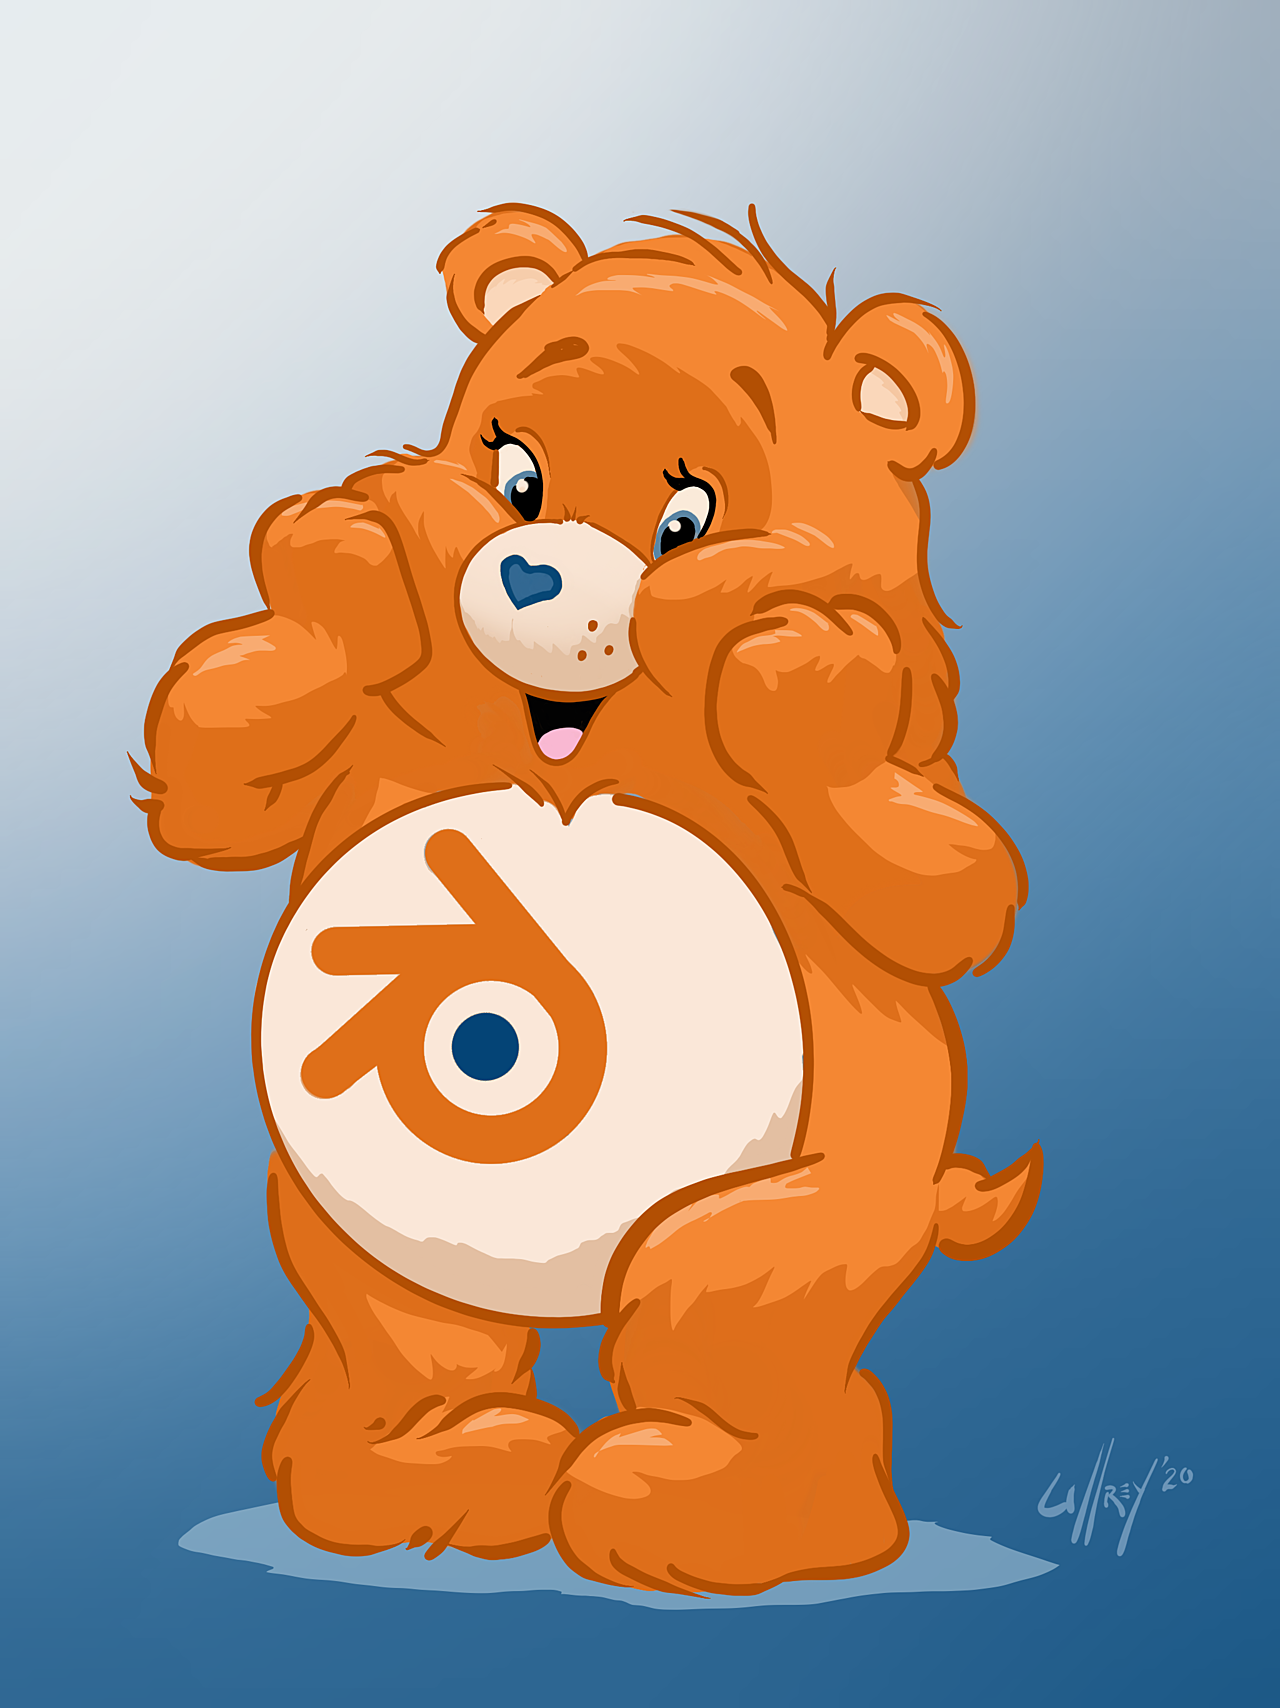 Hey! Who is this new Care Bear?